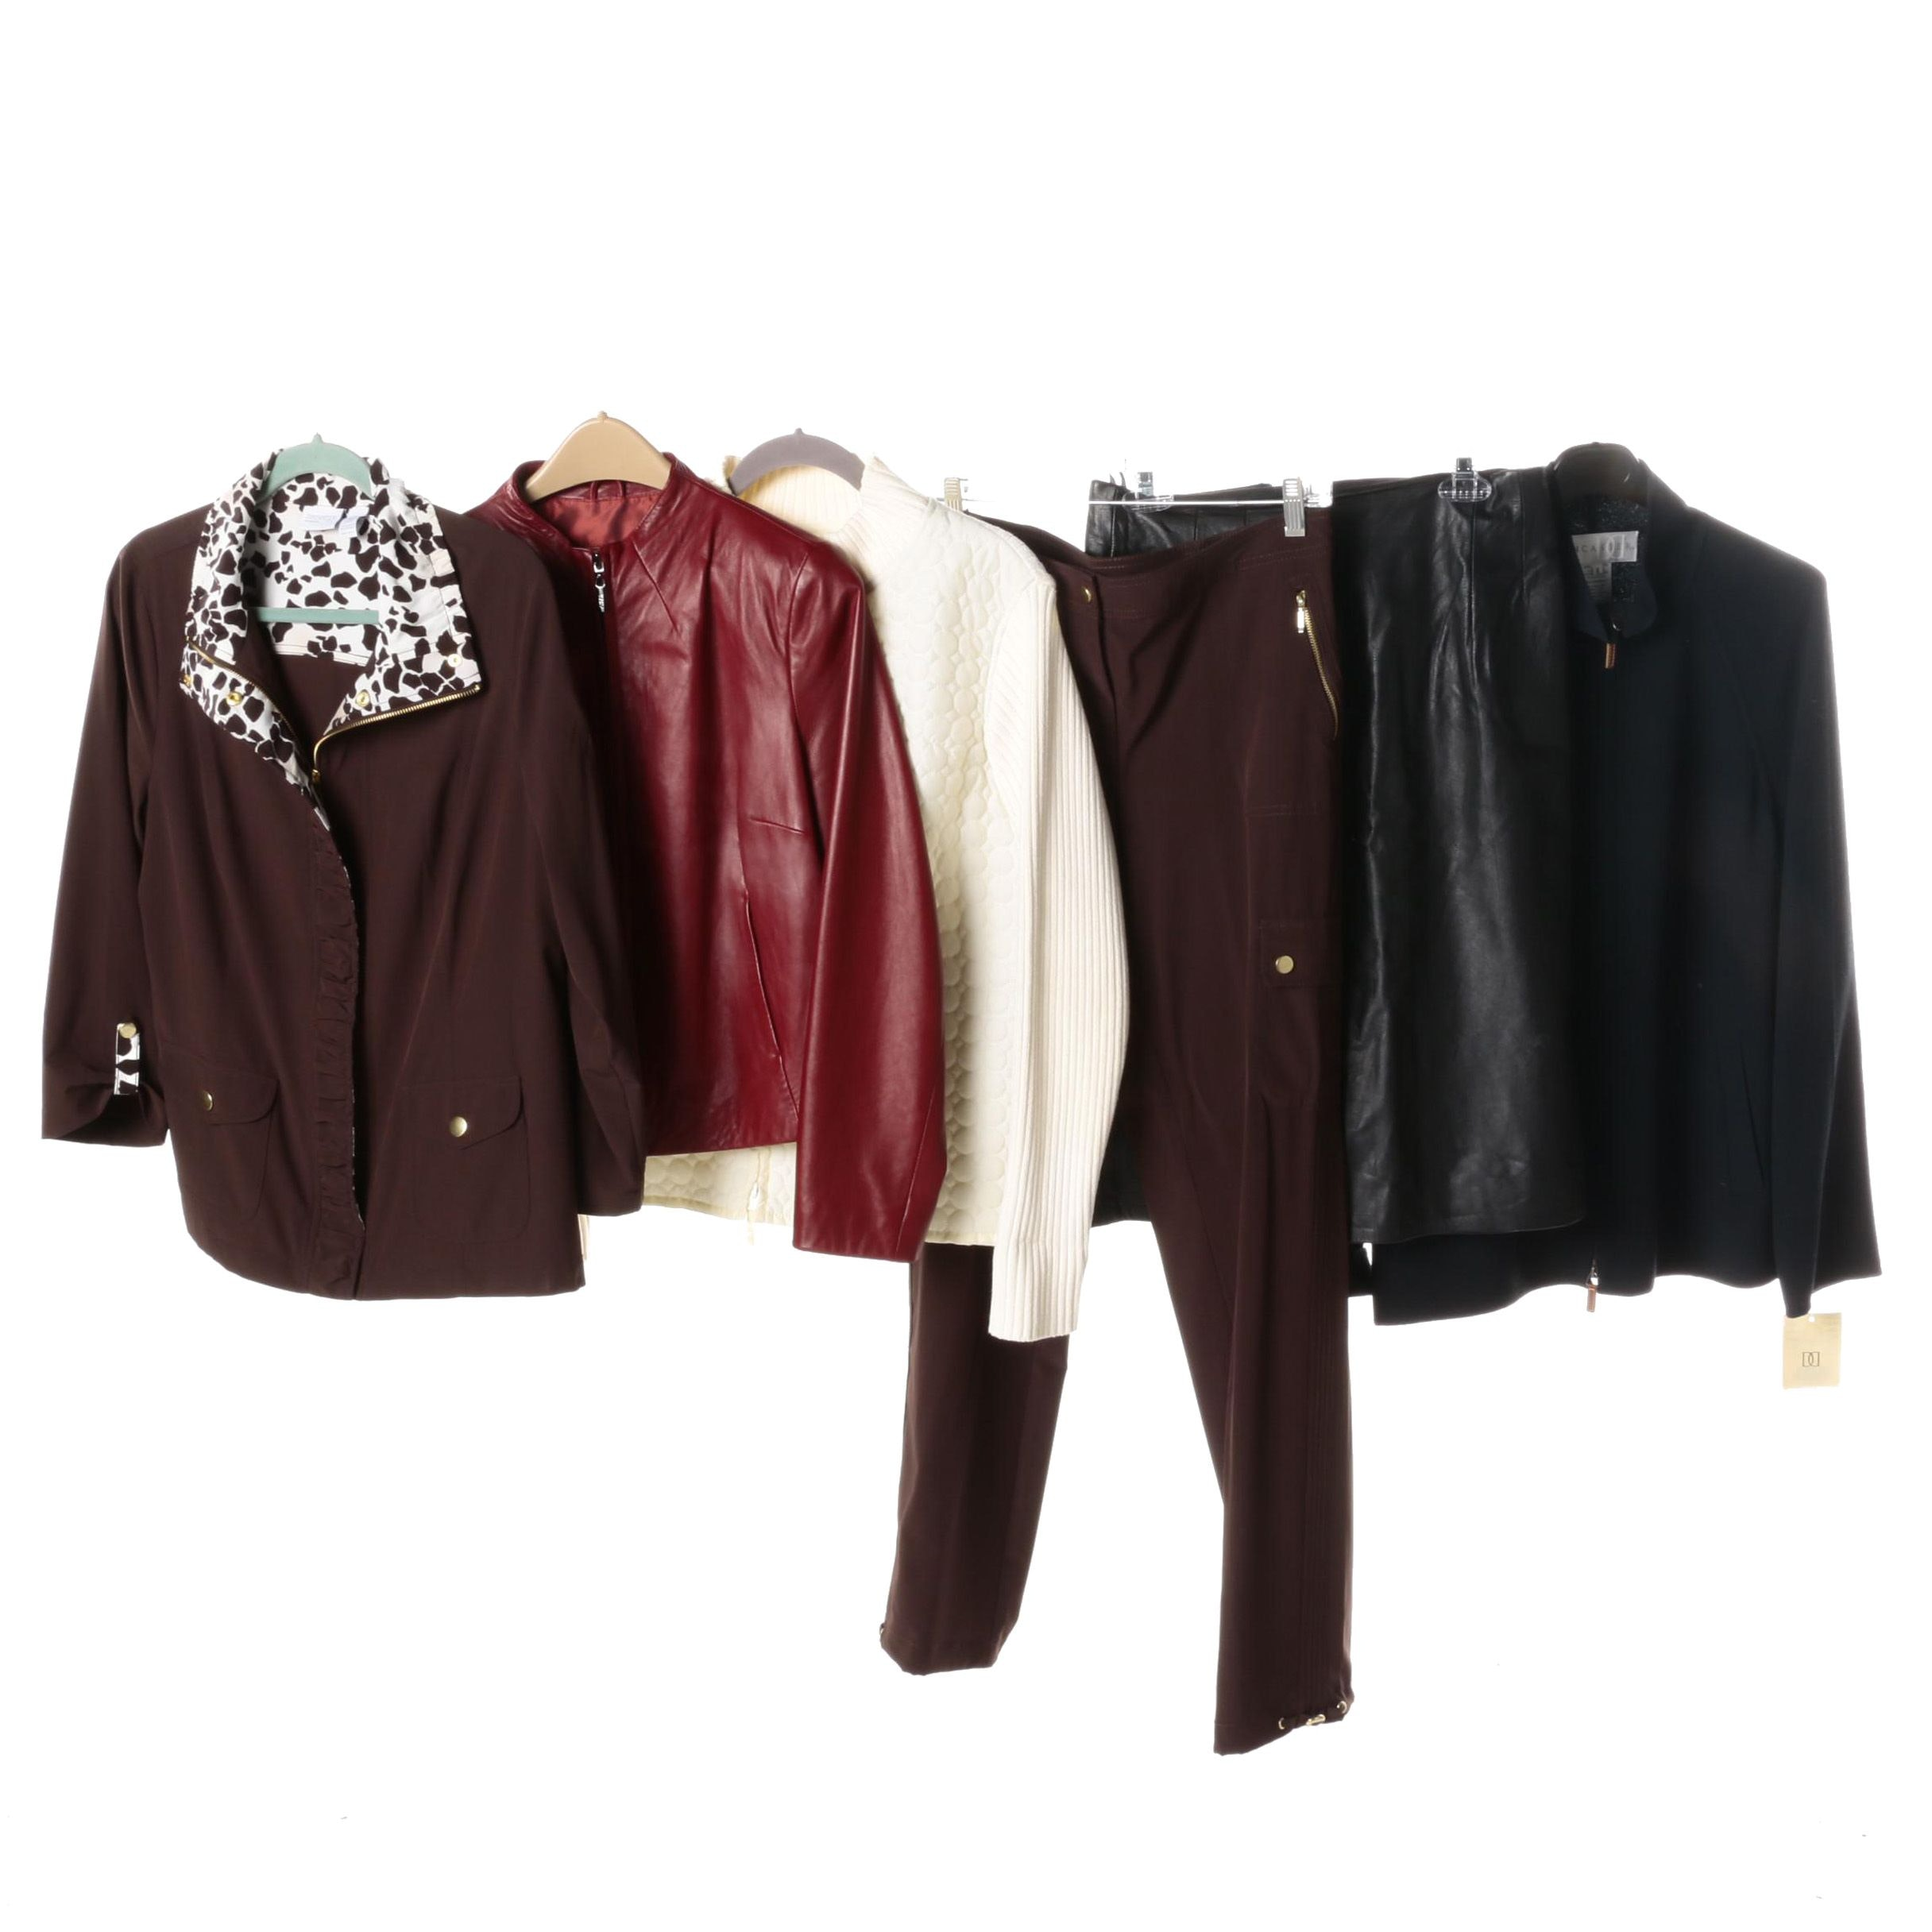 Women's Separates Including Leather Jacket and Skirt